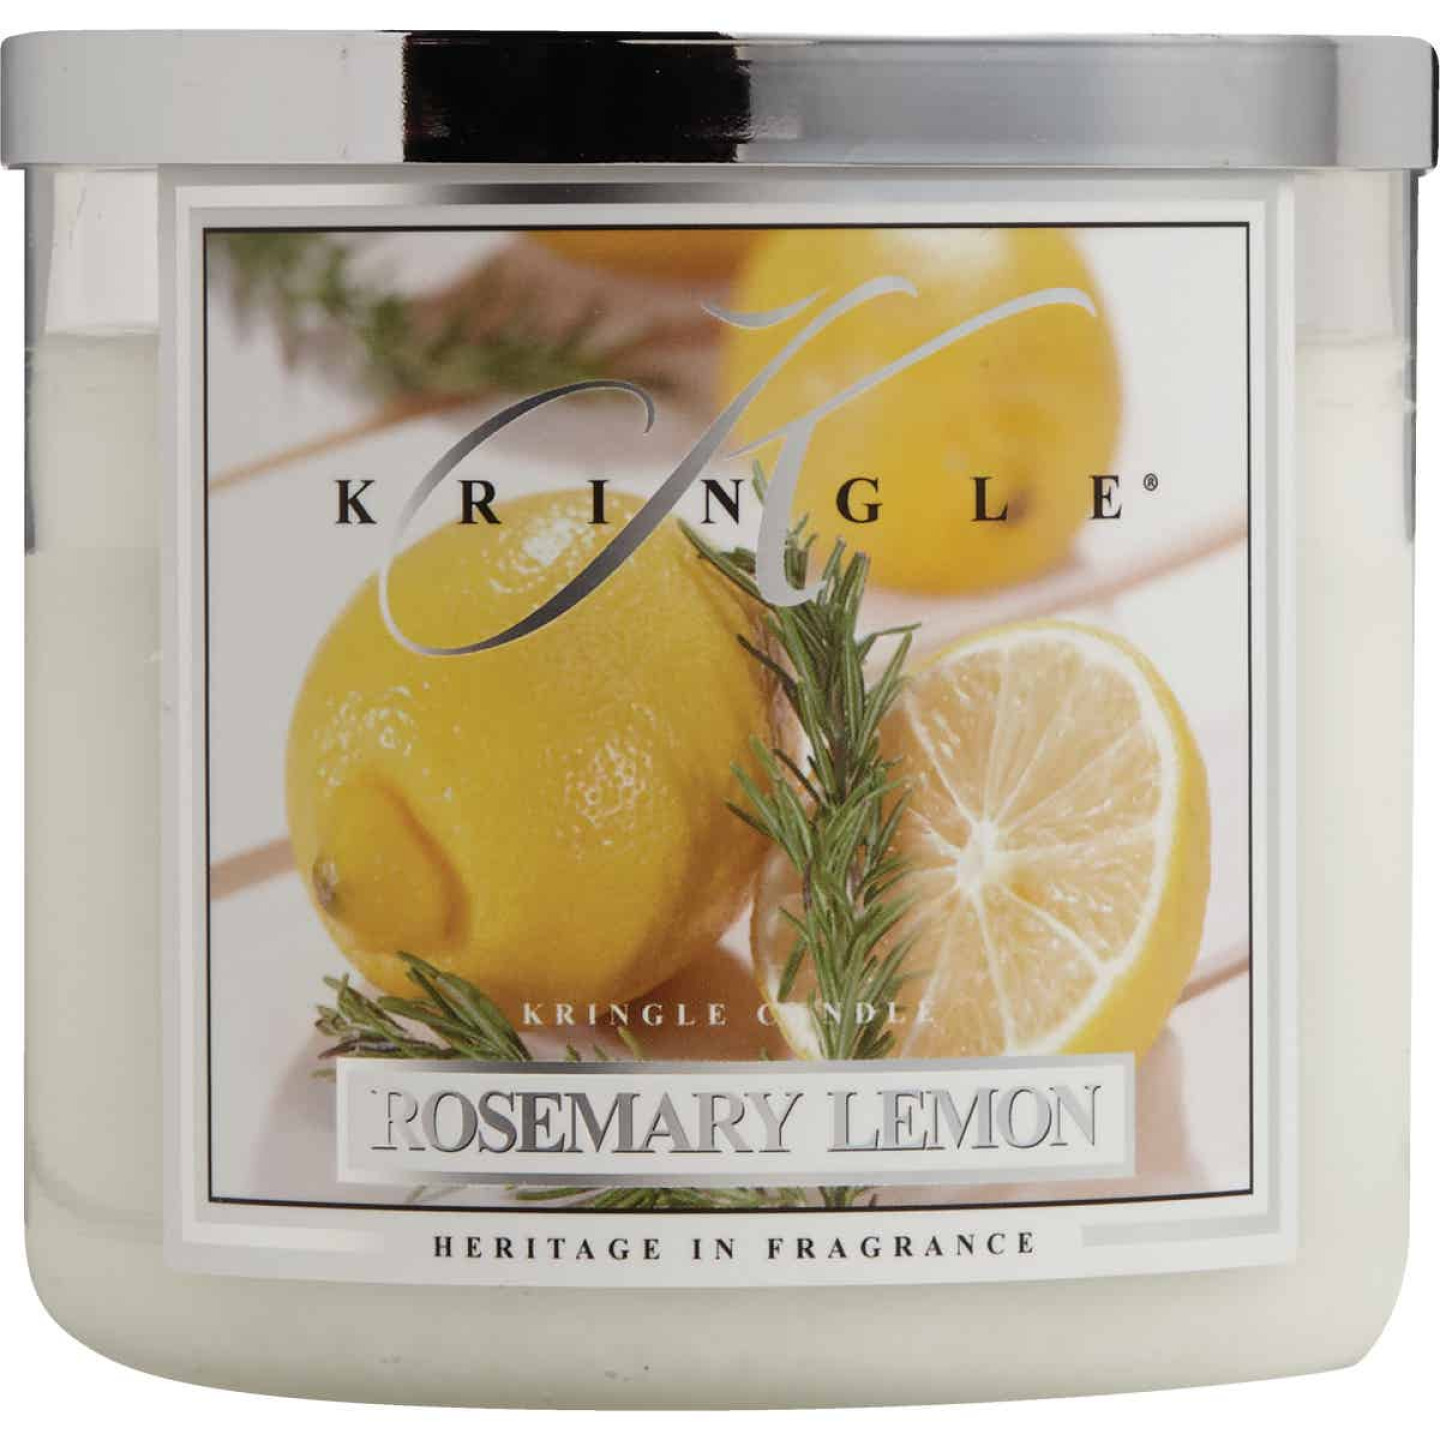 Kringle Candle 14.5 Oz. Rosemary Lemon Jar Candle Image 2